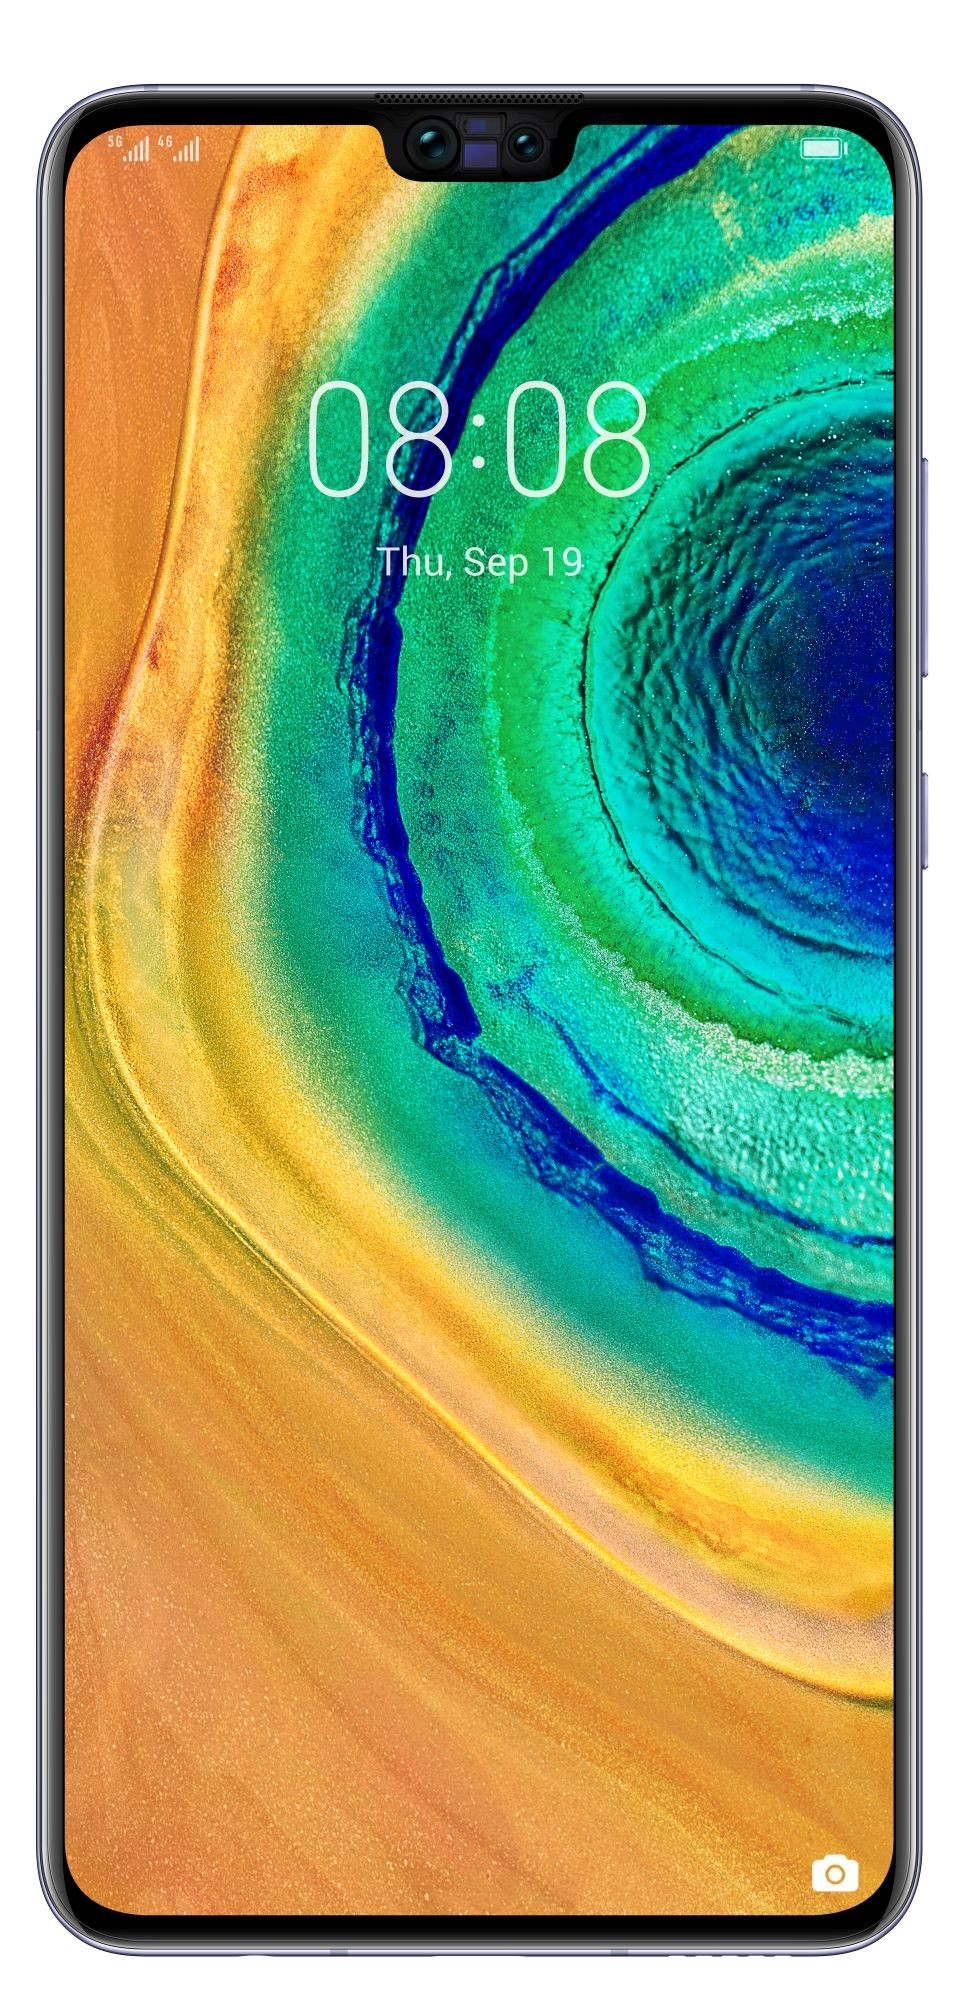 A new leak of the Mate30 series image 2